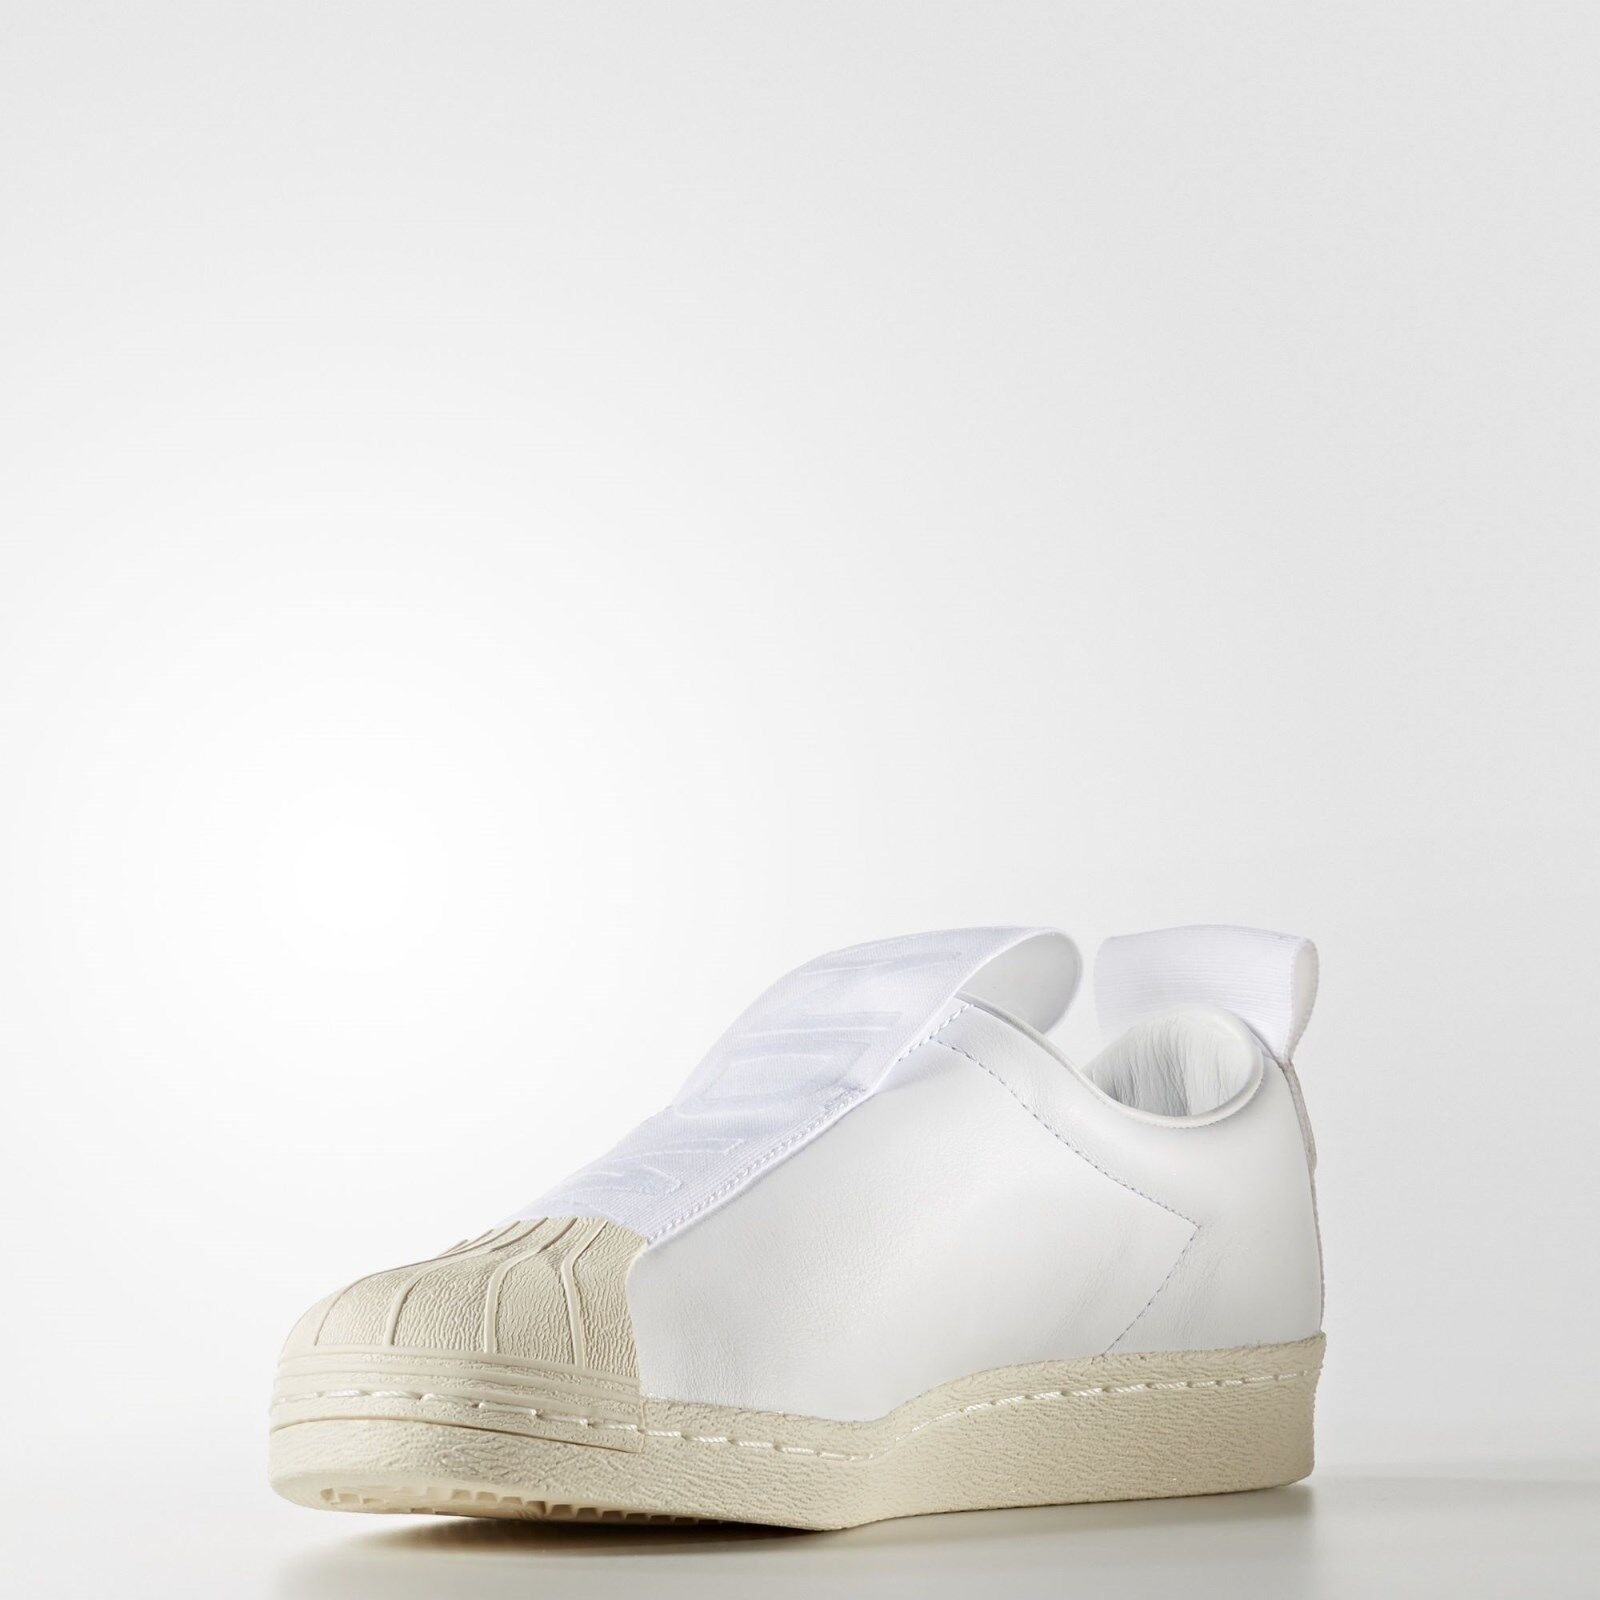 Adidas i originali delle superstar pc i Adidas mocassini taglia 9 noi by9139 58c359